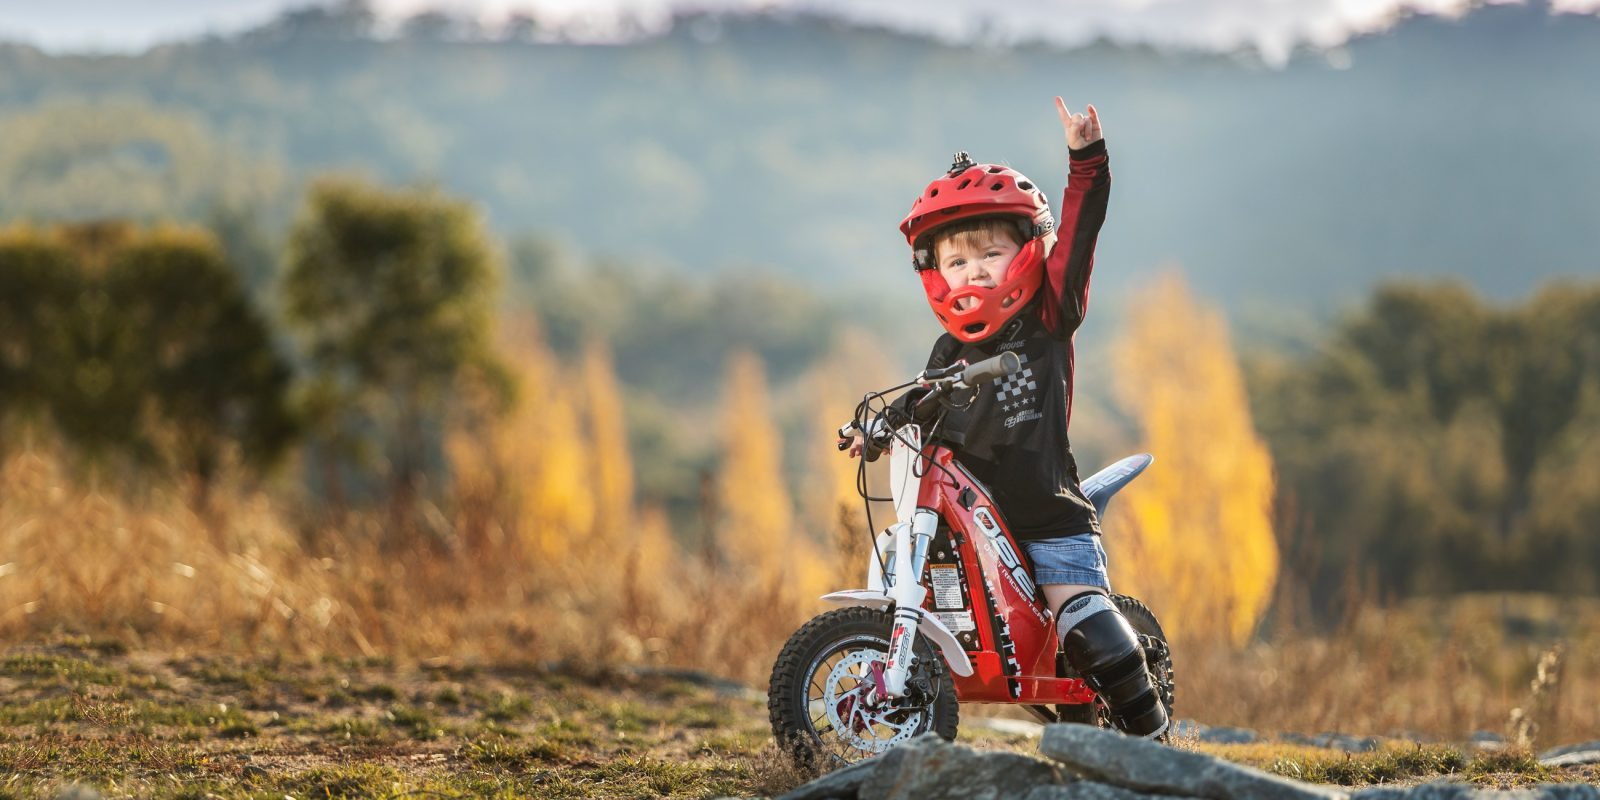 OSET wants to get kids off video games and onto electric dirt bikes